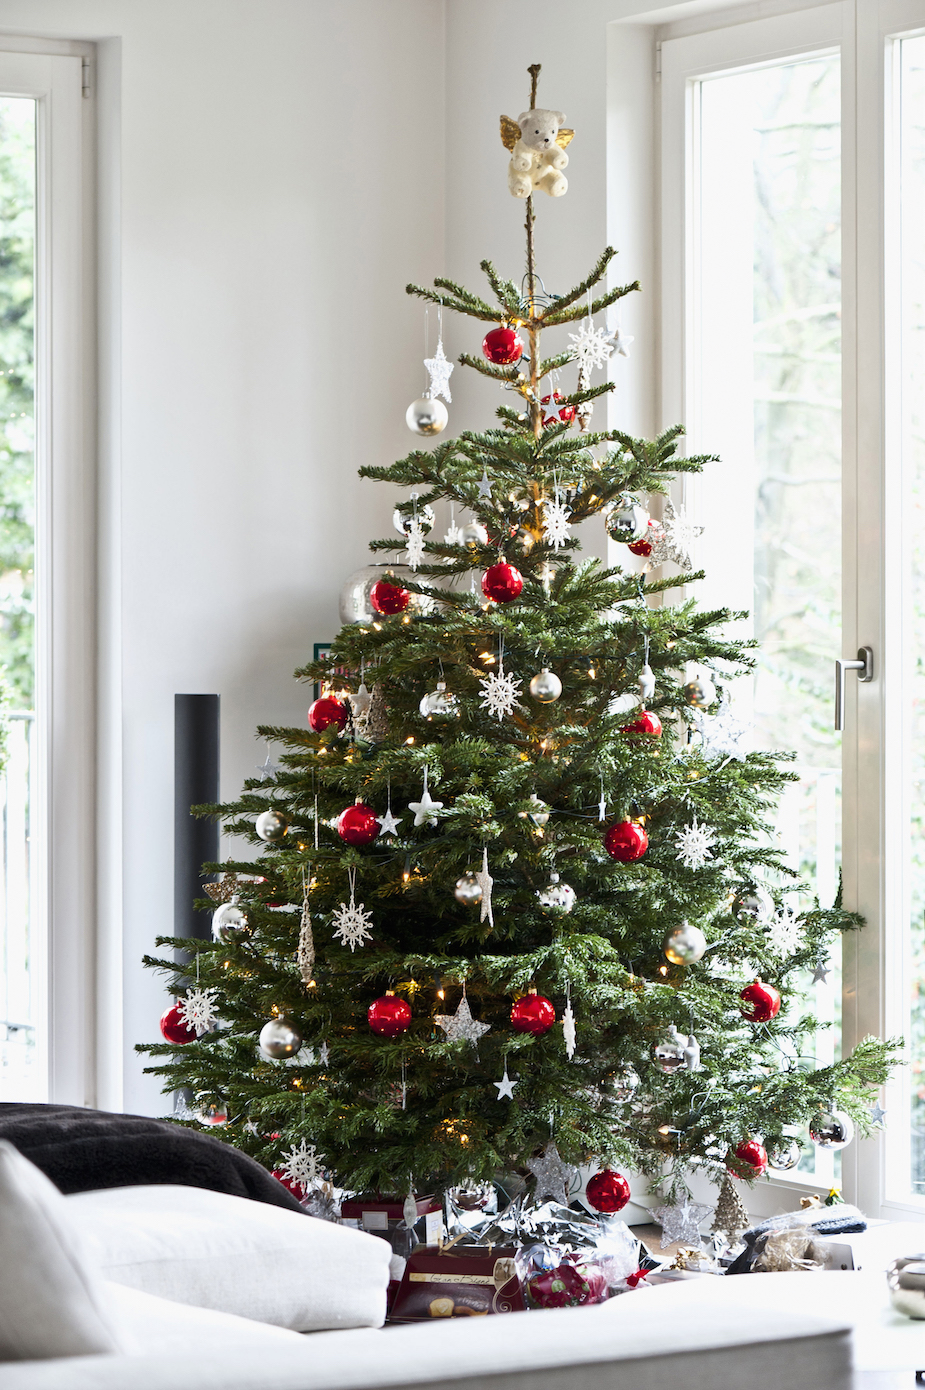 How to Buy Your First Christmas Tree| Real Simple